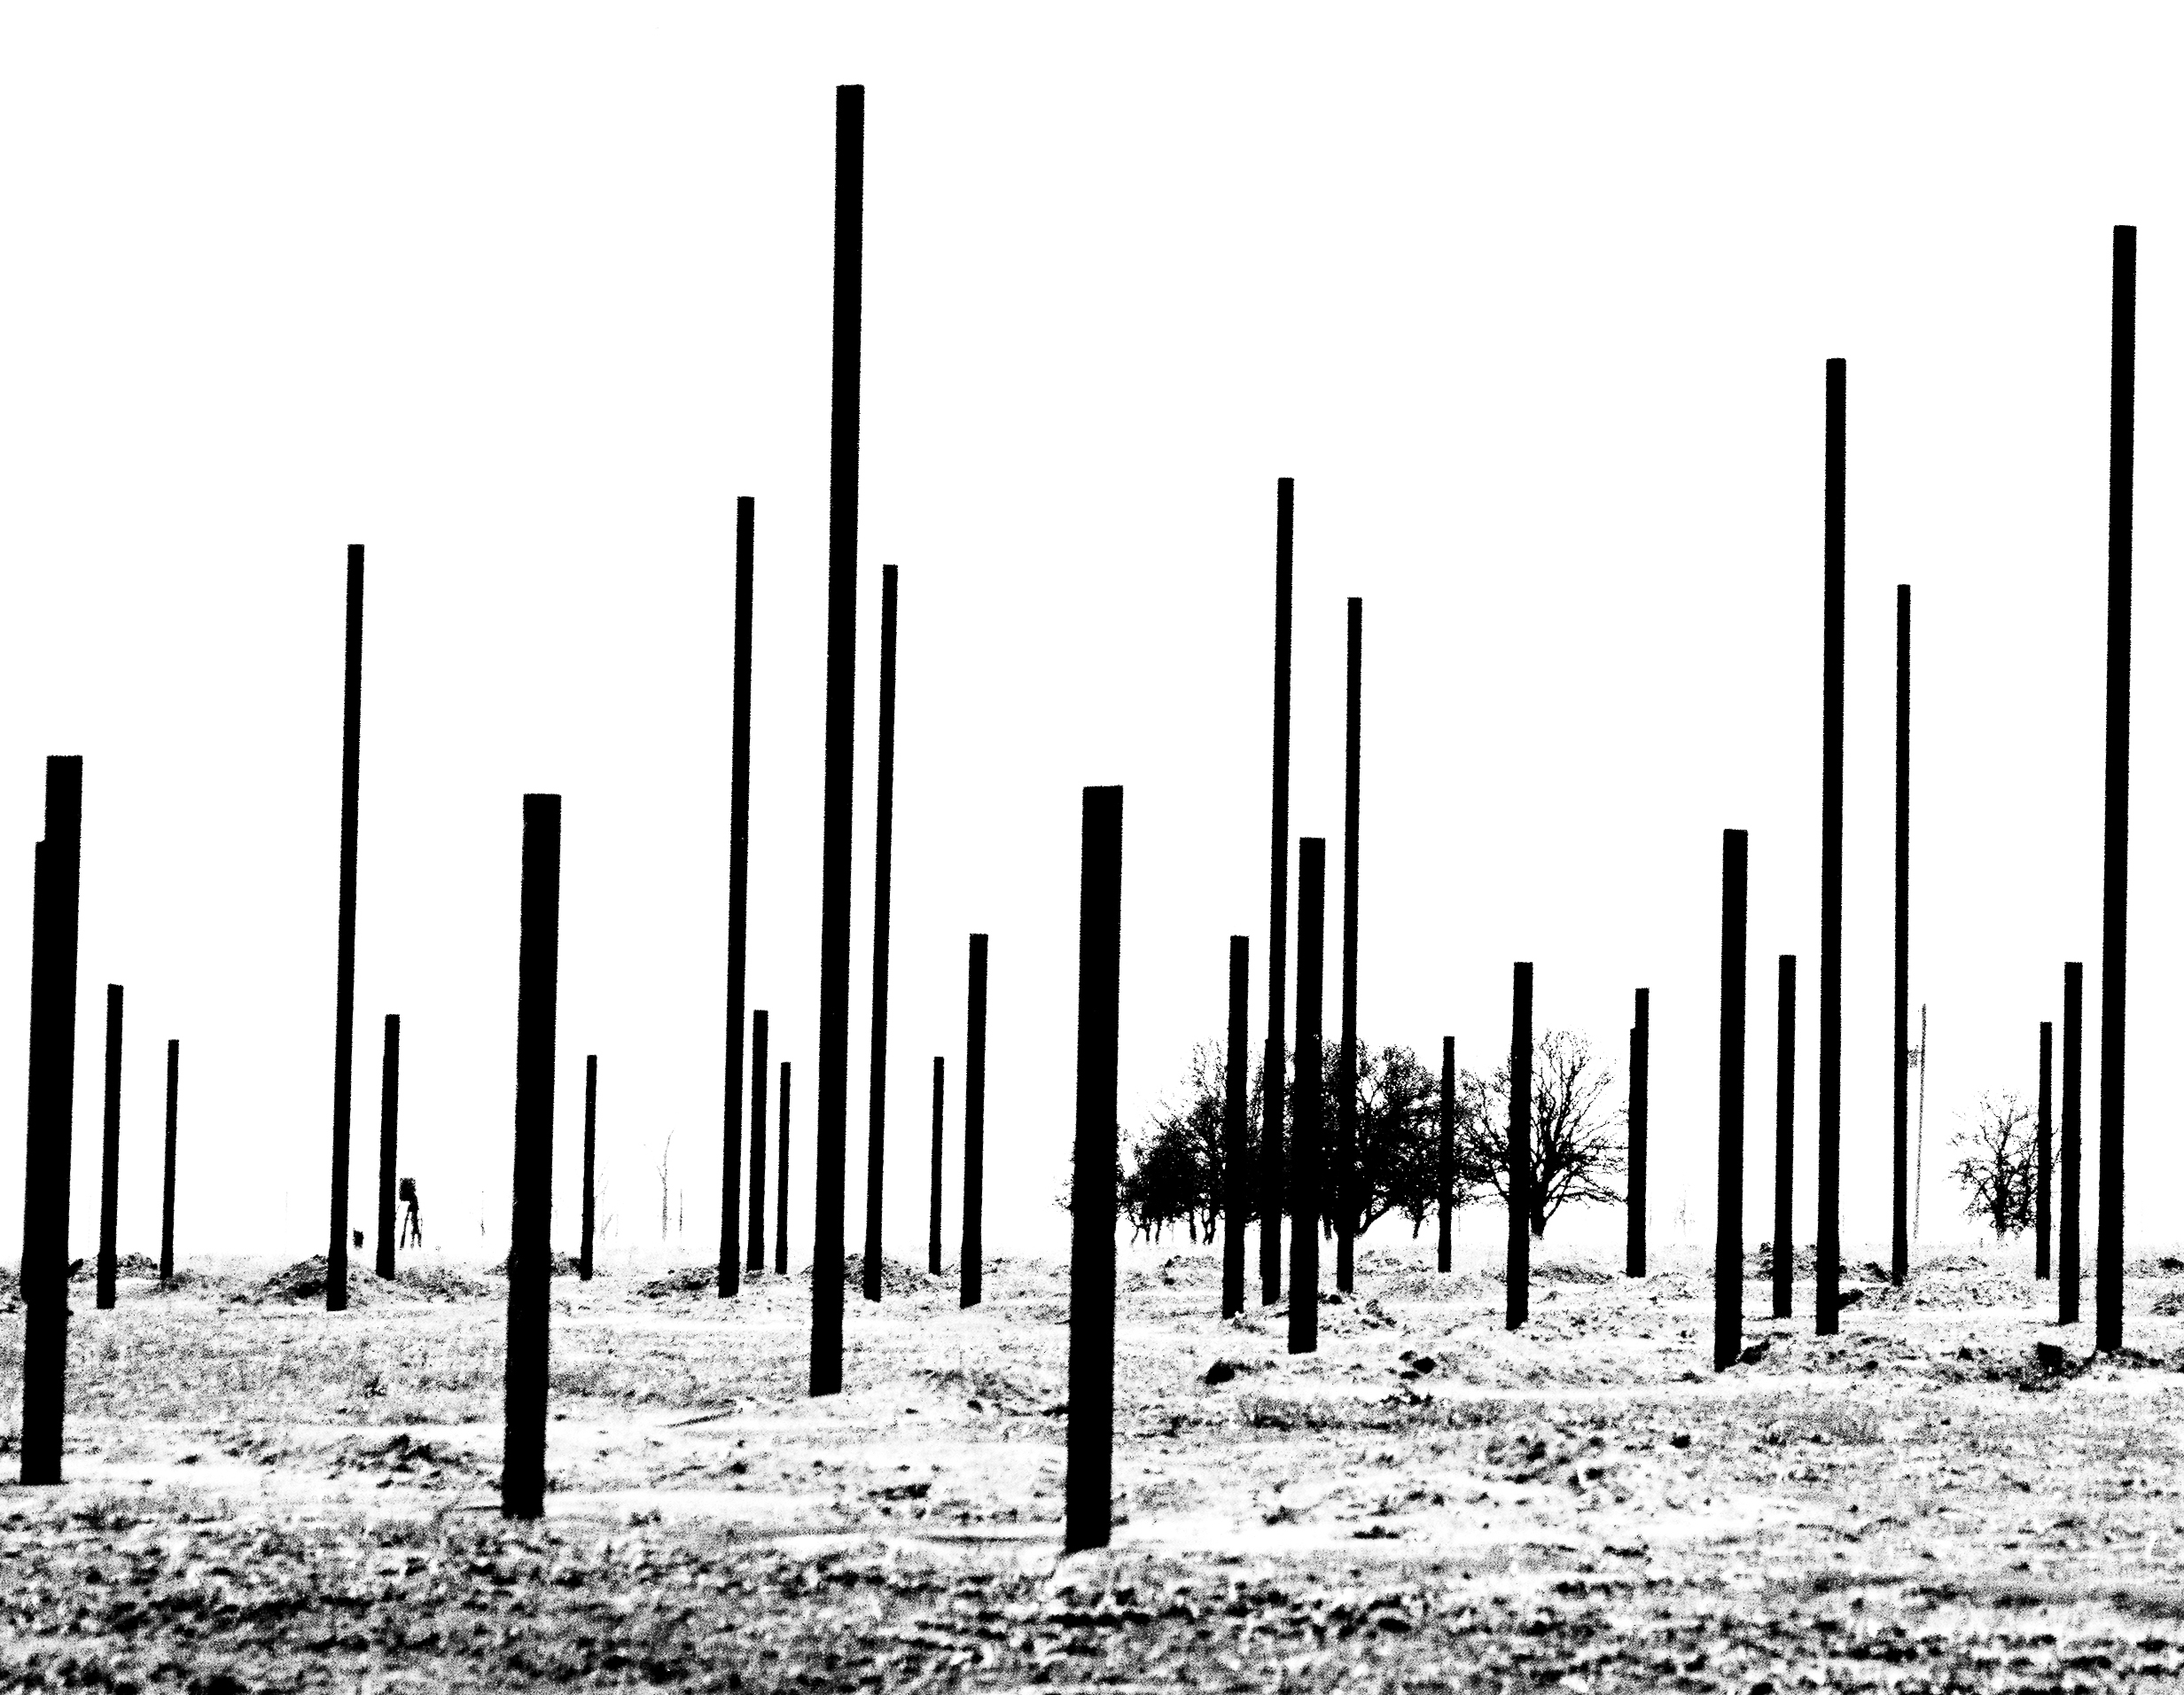 An artistic image of an open prairie featuring sparse, scrubby trees and a number of vertical black poles throughout